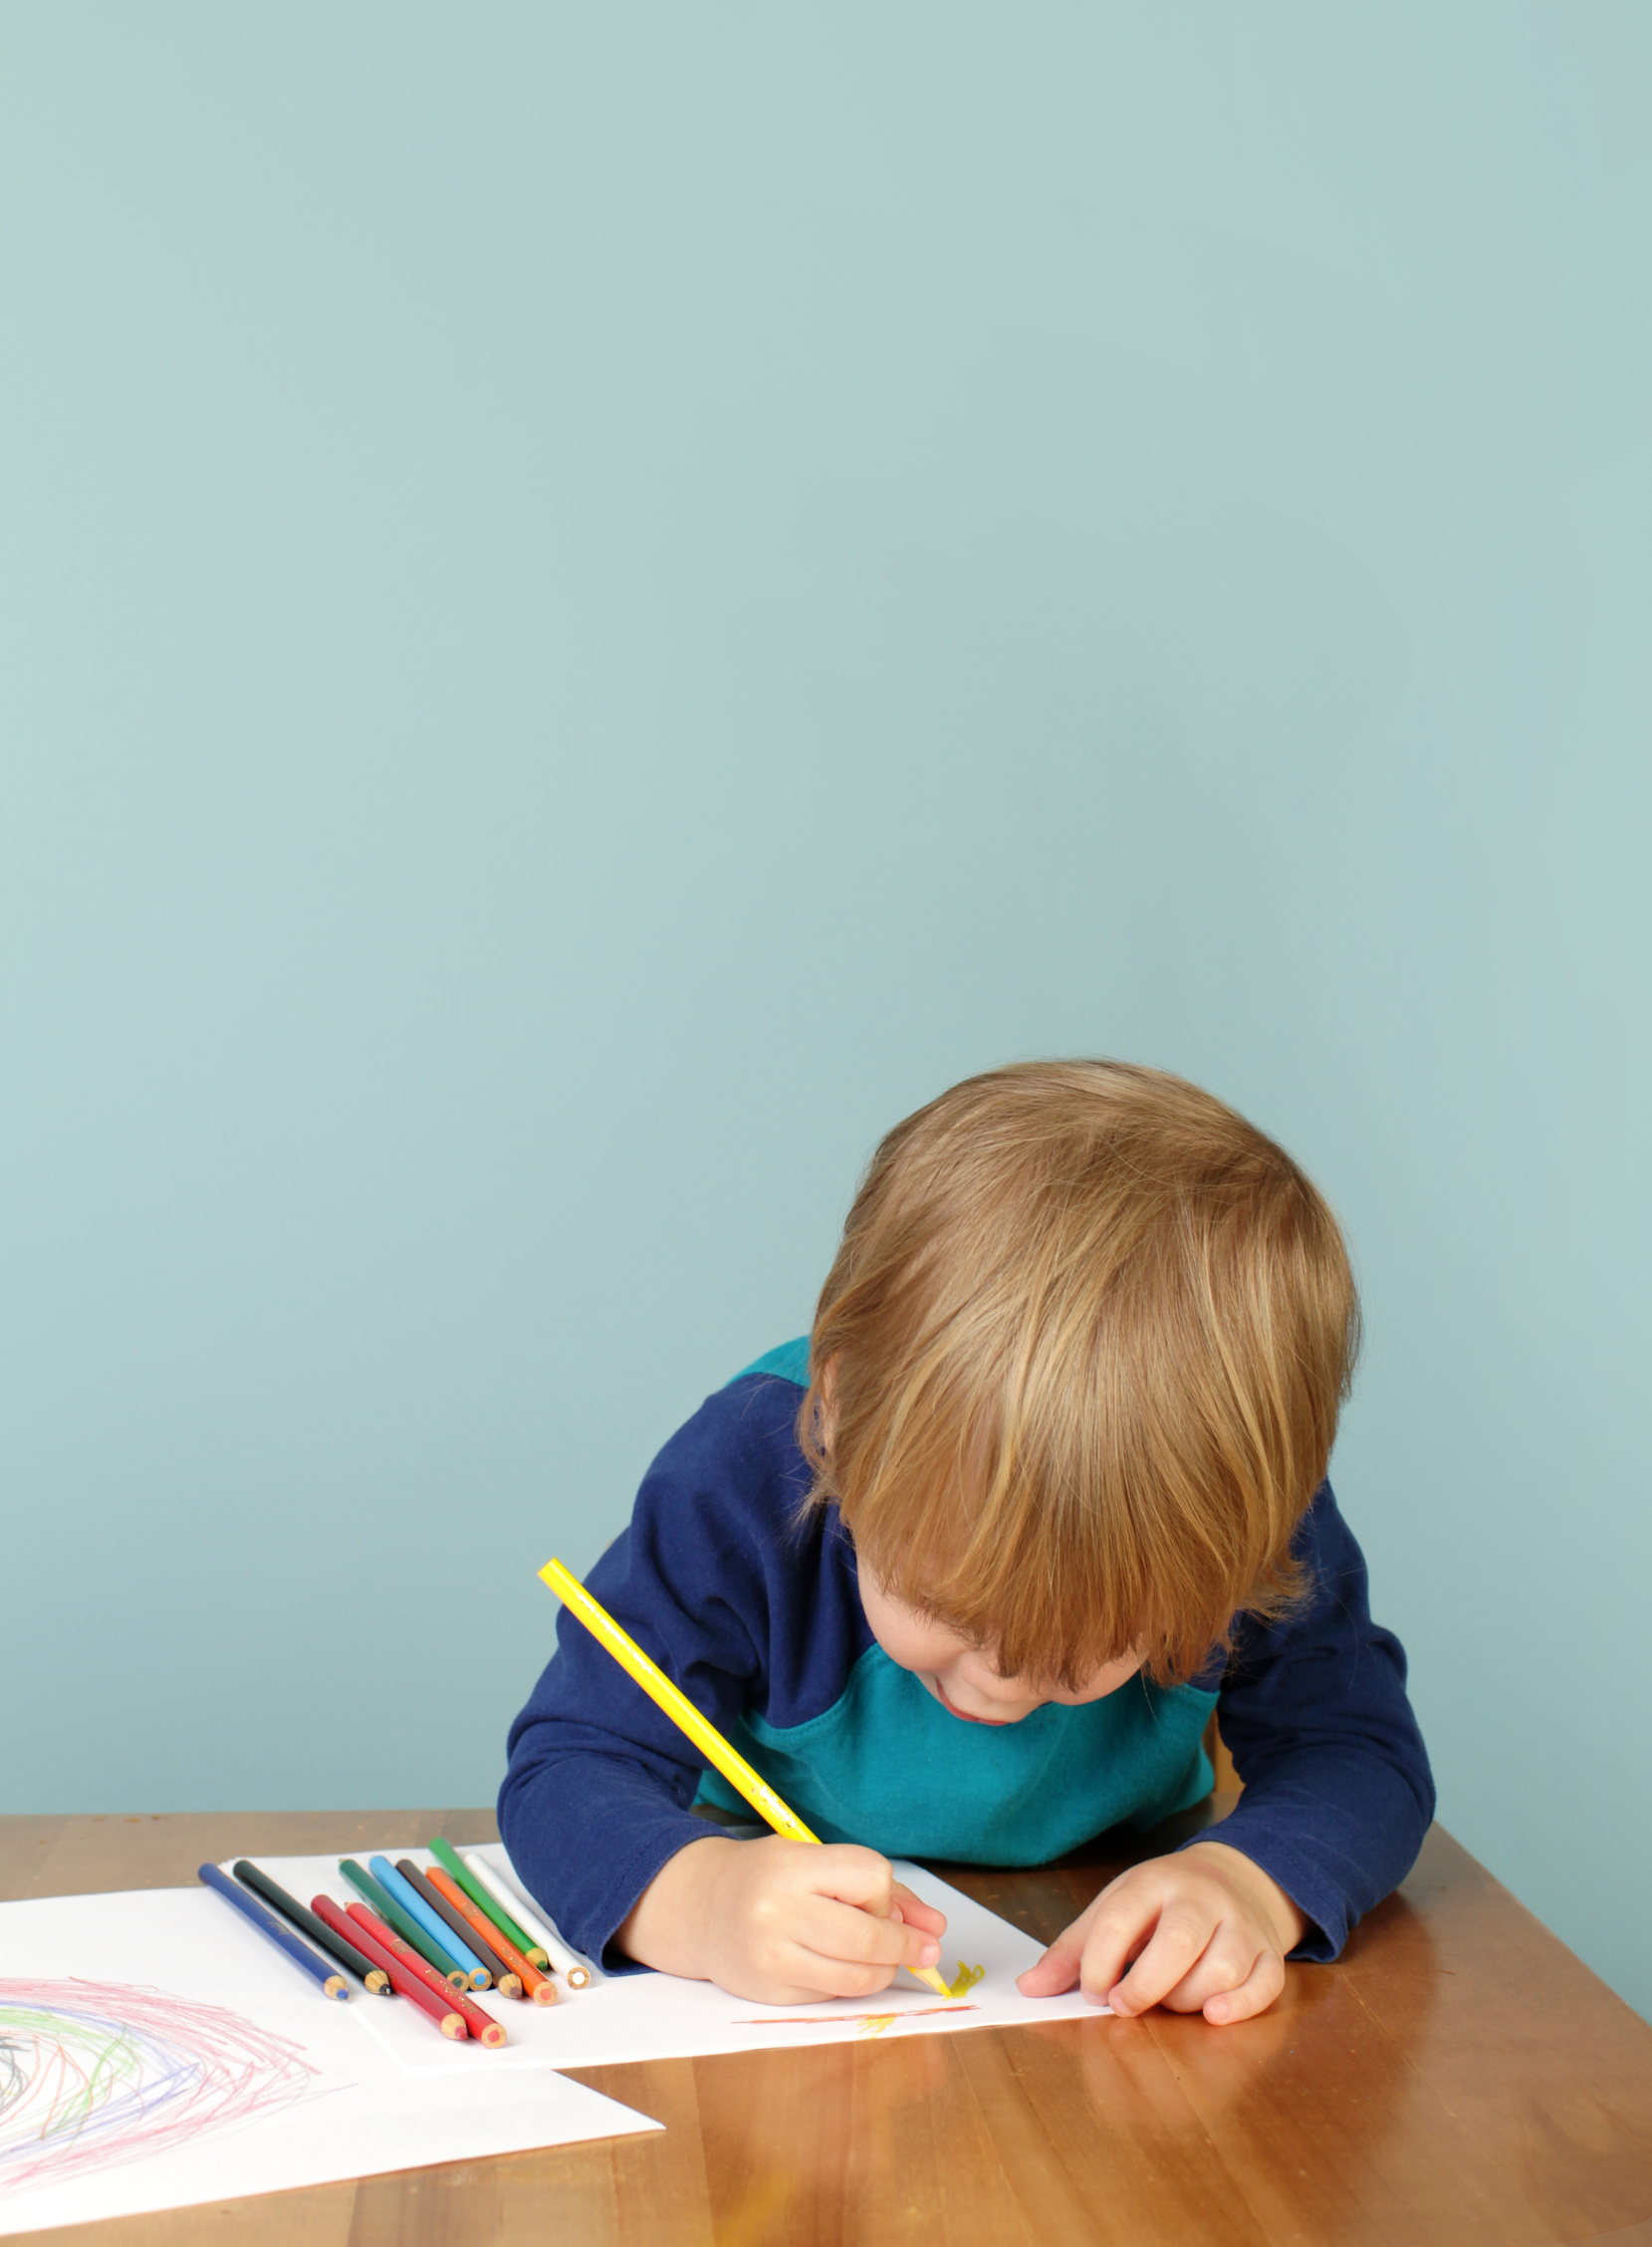 custom writing worksheets preschool These name handwriting worksheets are editable and can be customized crystalandcompcom dallas mom blogger sharing homeschooling solutions, activities for kids and resources for moms.